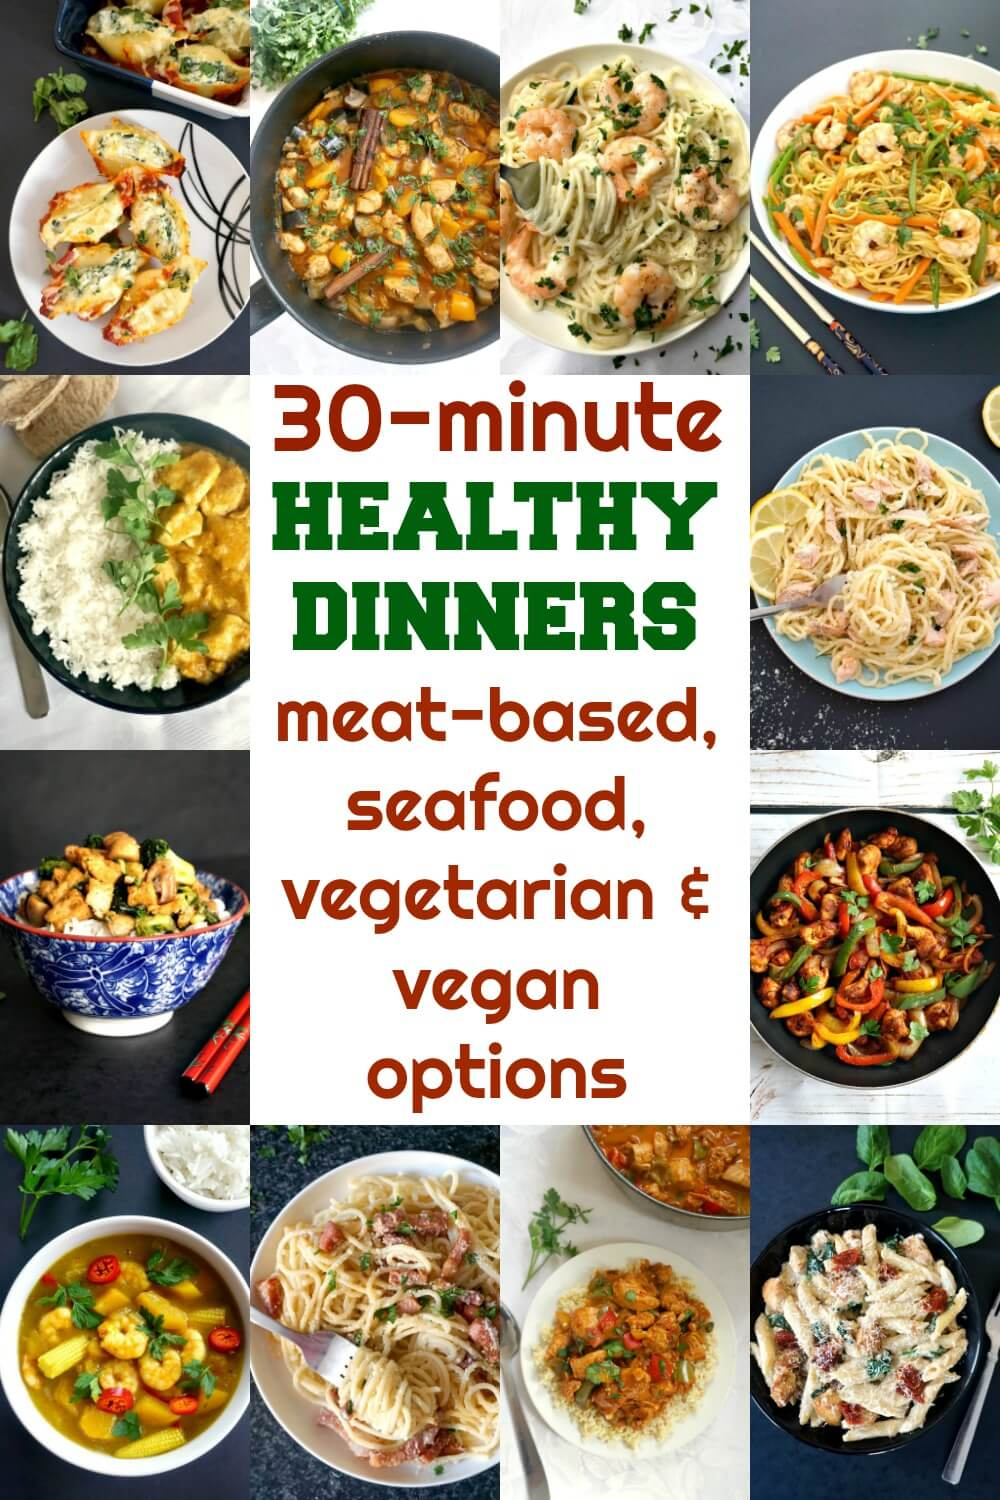 30 minute healthy meals my gorgeous recipesdelicious 30 minute healthy meals, a collection of recipes that are quick and easy to